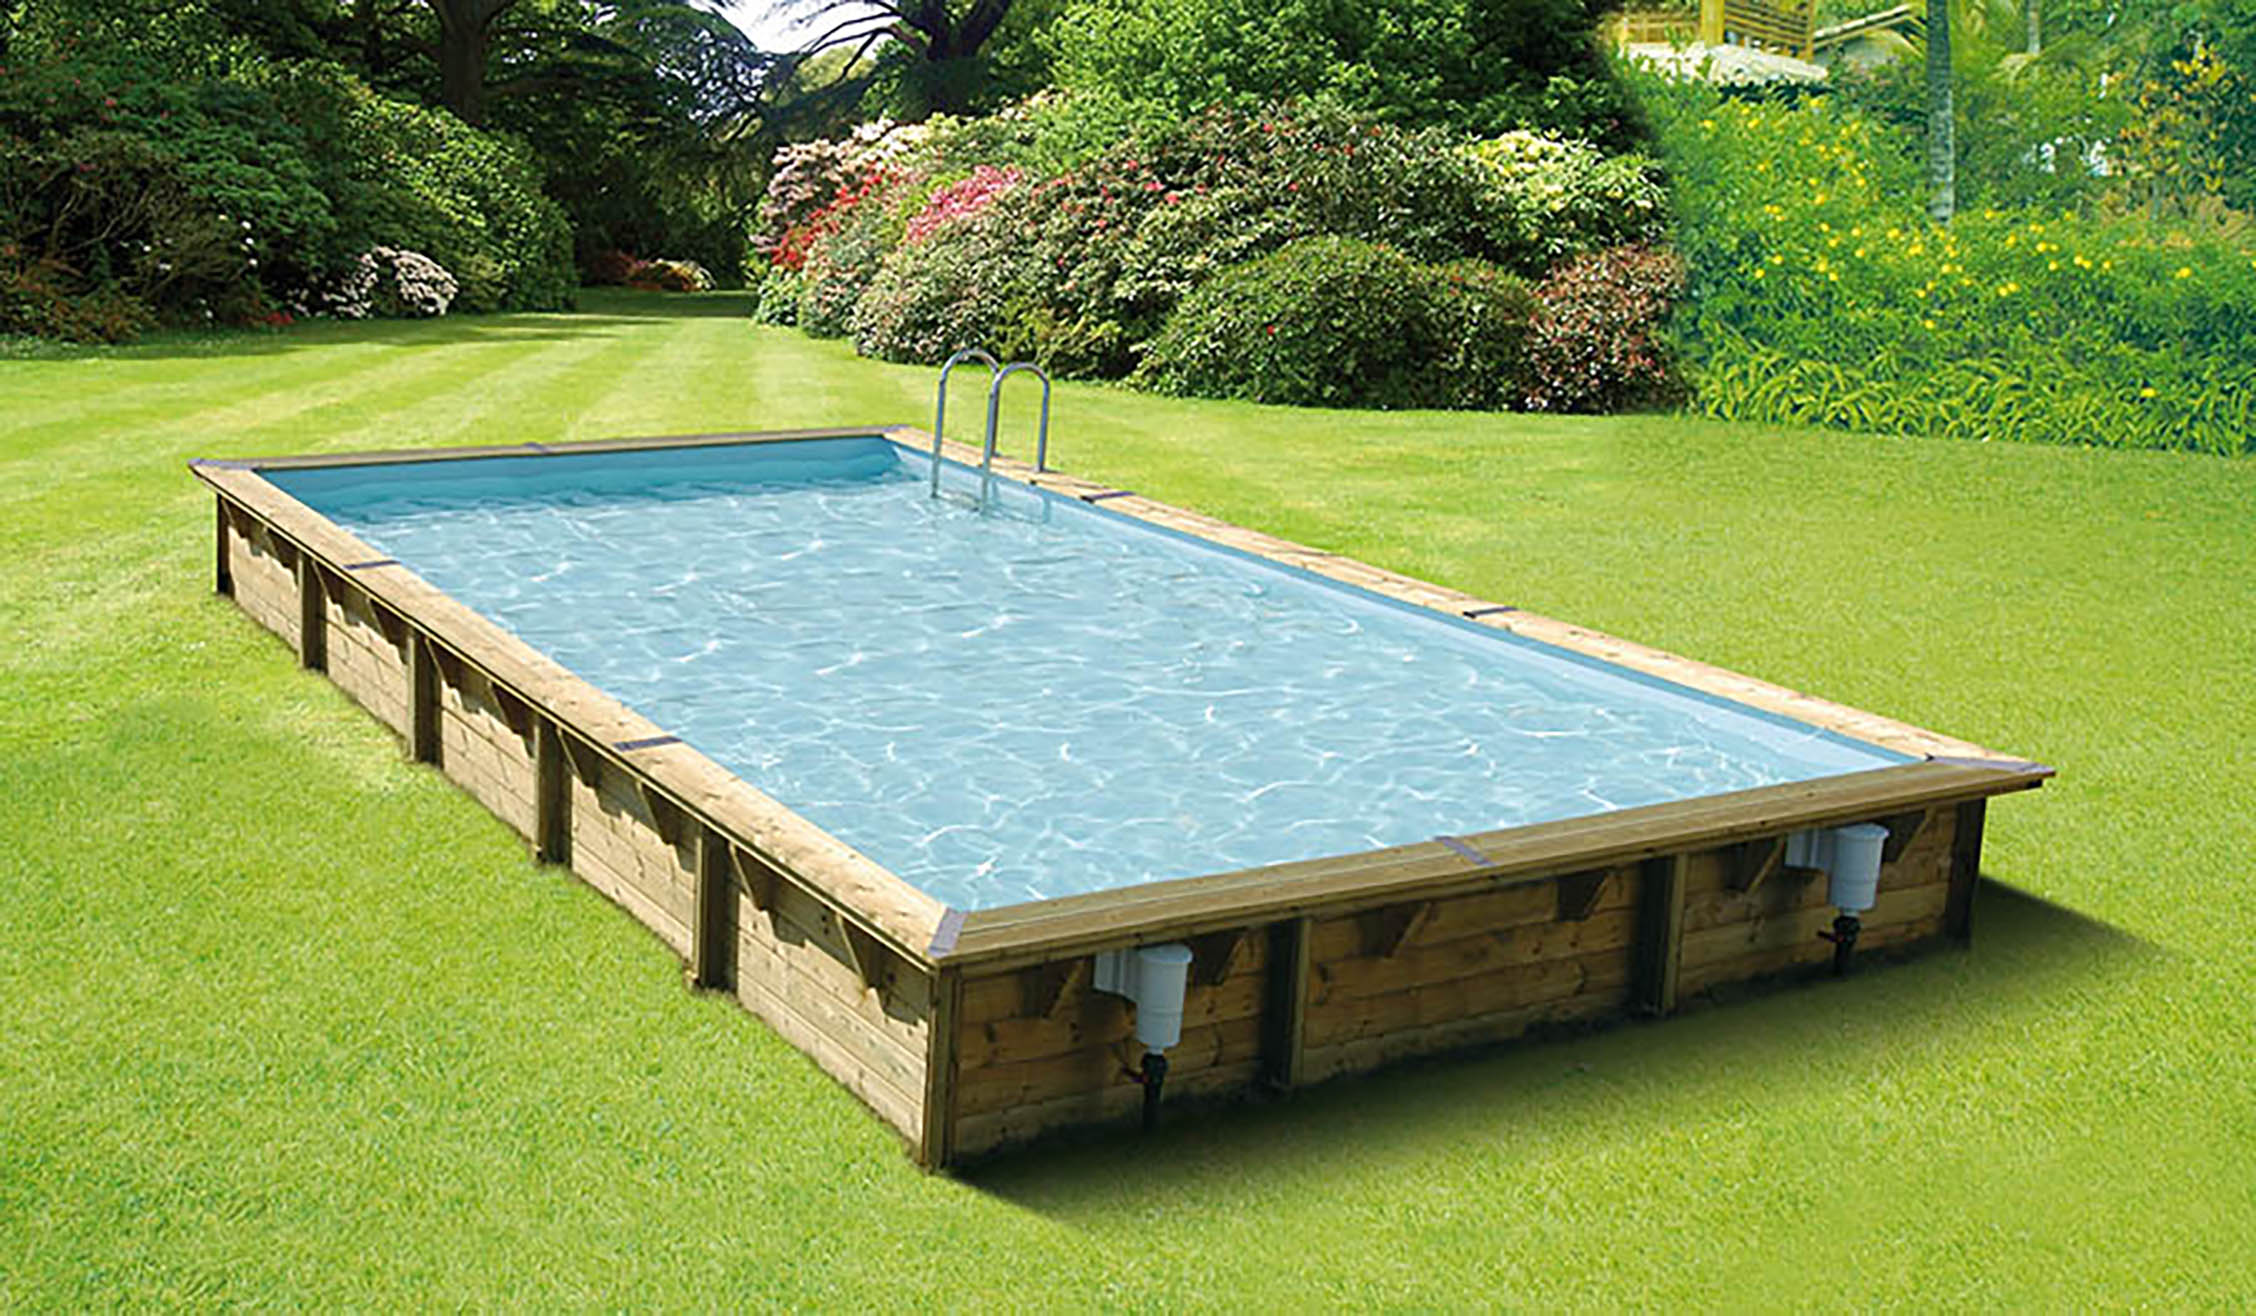 Construction piscines nimes gepad piscines et spa 30000 for Piscine en kit bois hors sol